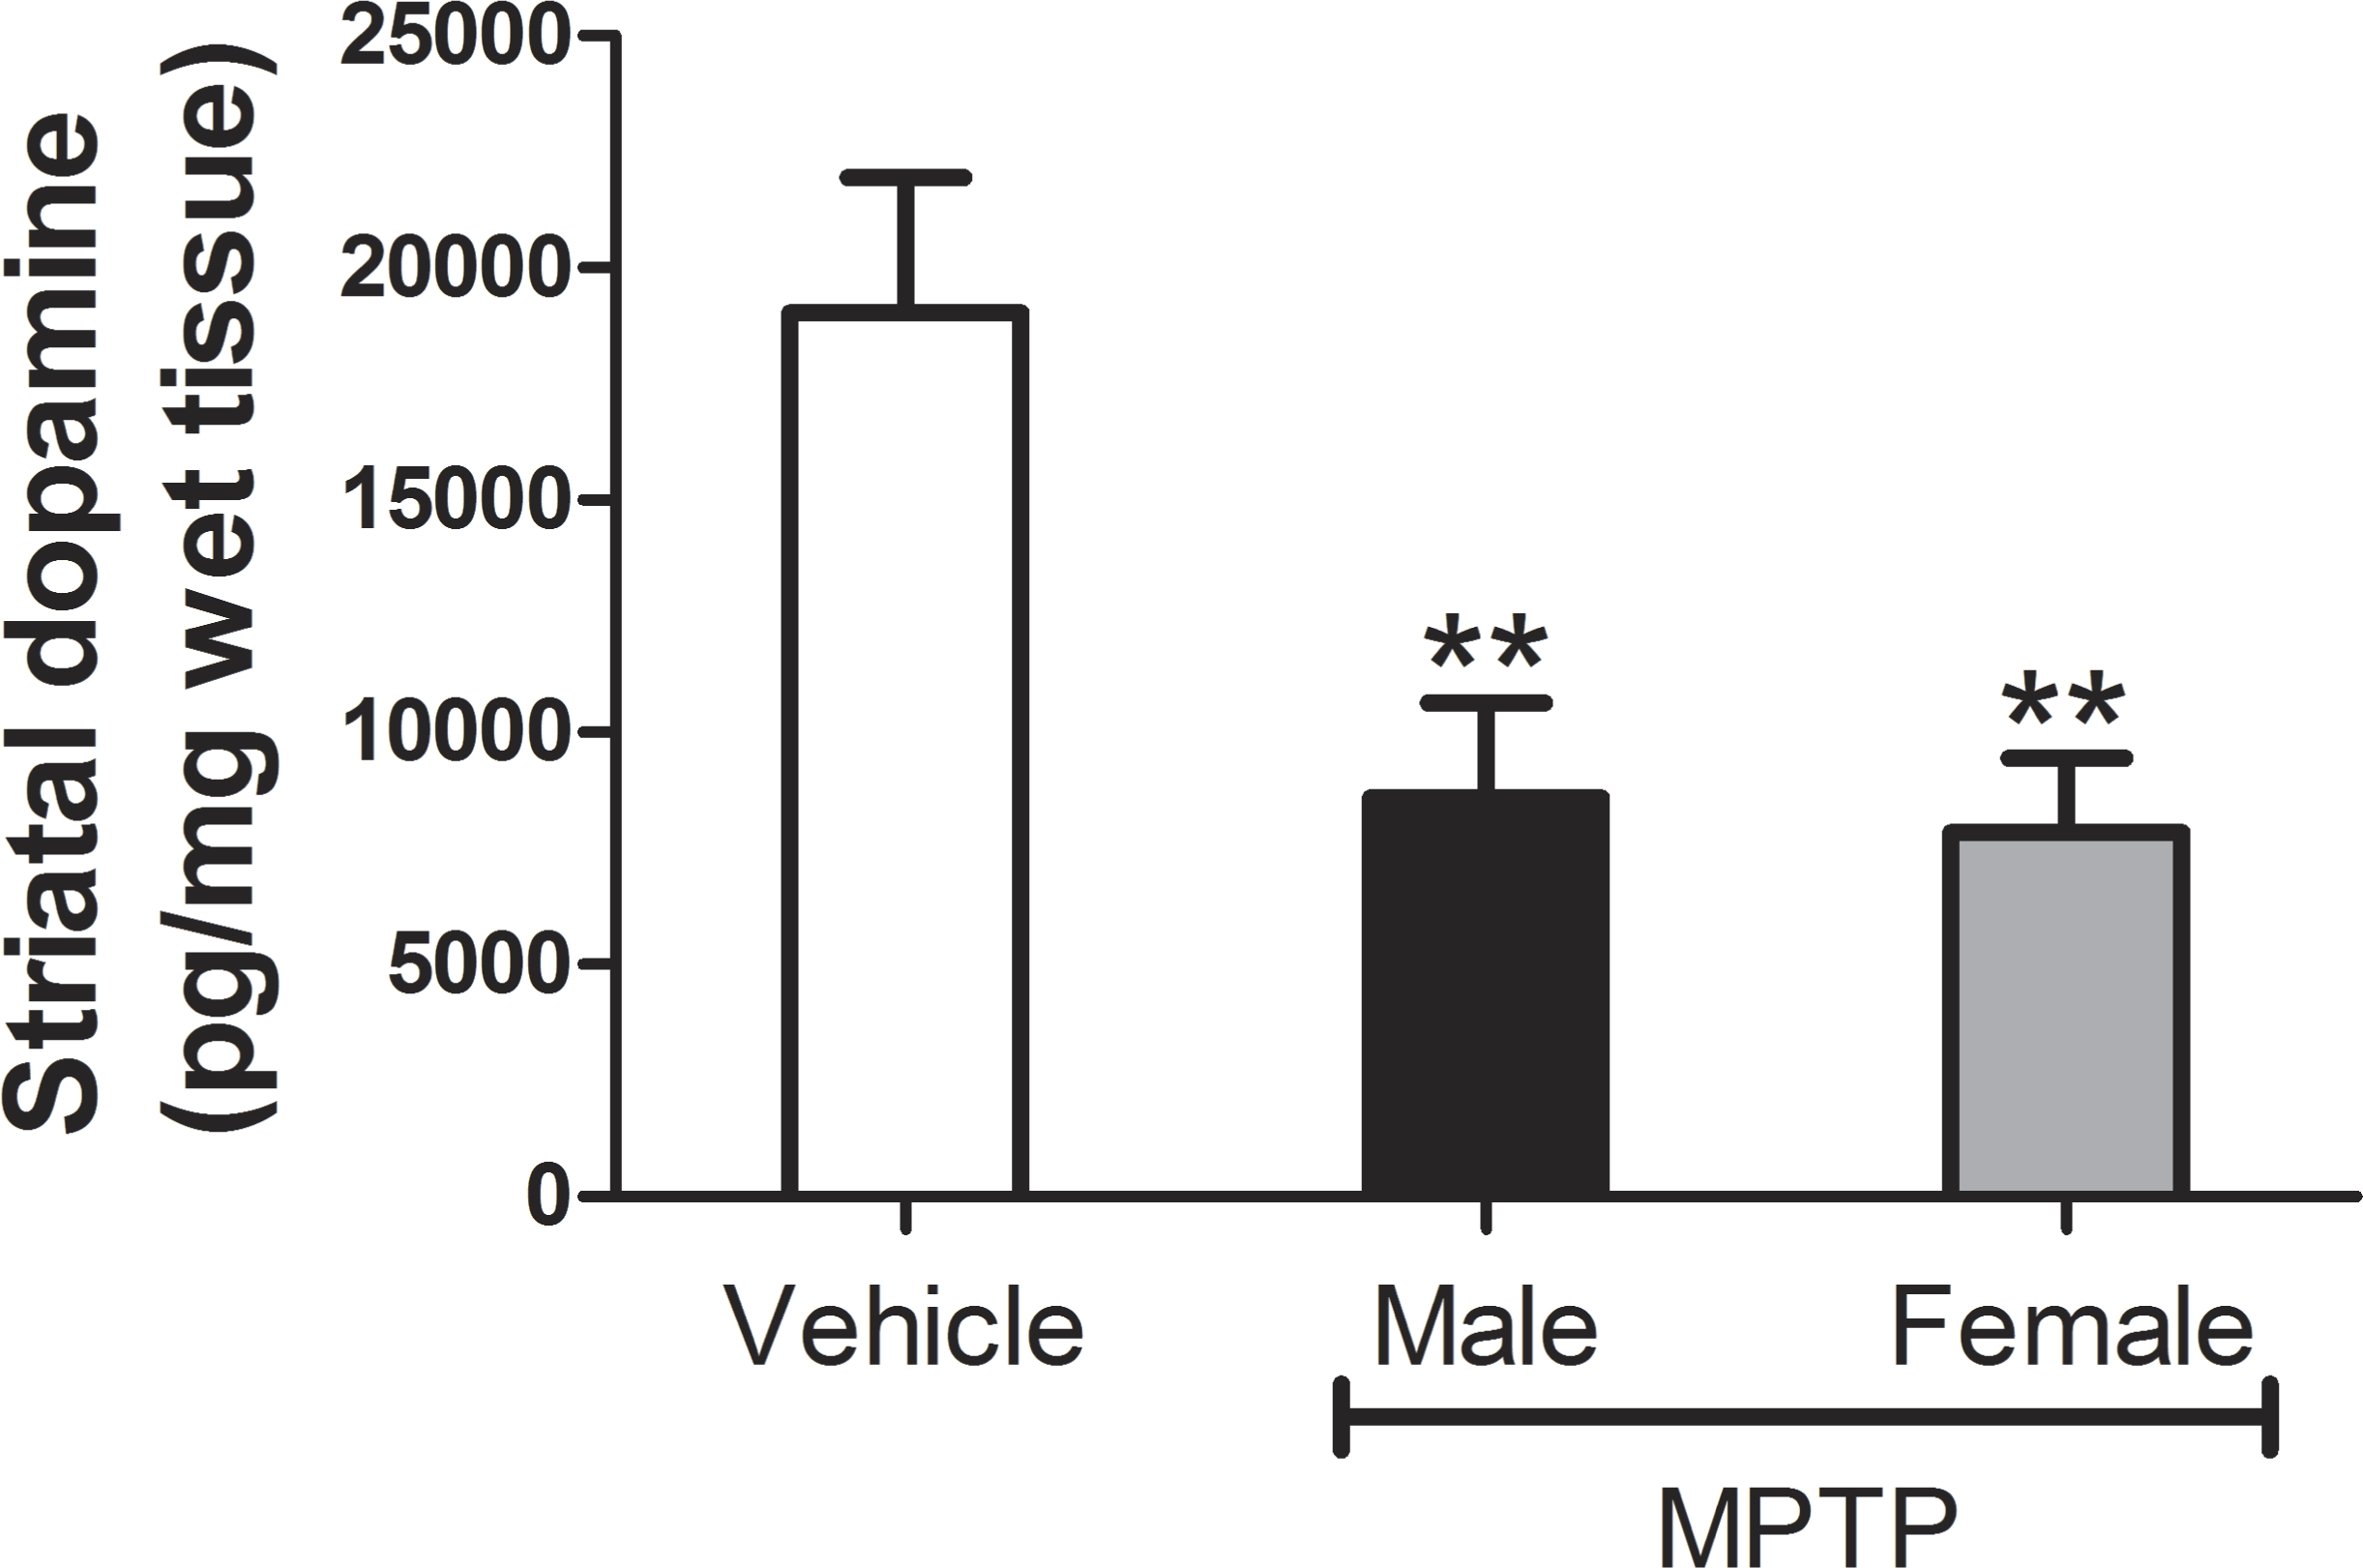 A novel biomechanical analysis of gait changes in the MPTP mouse